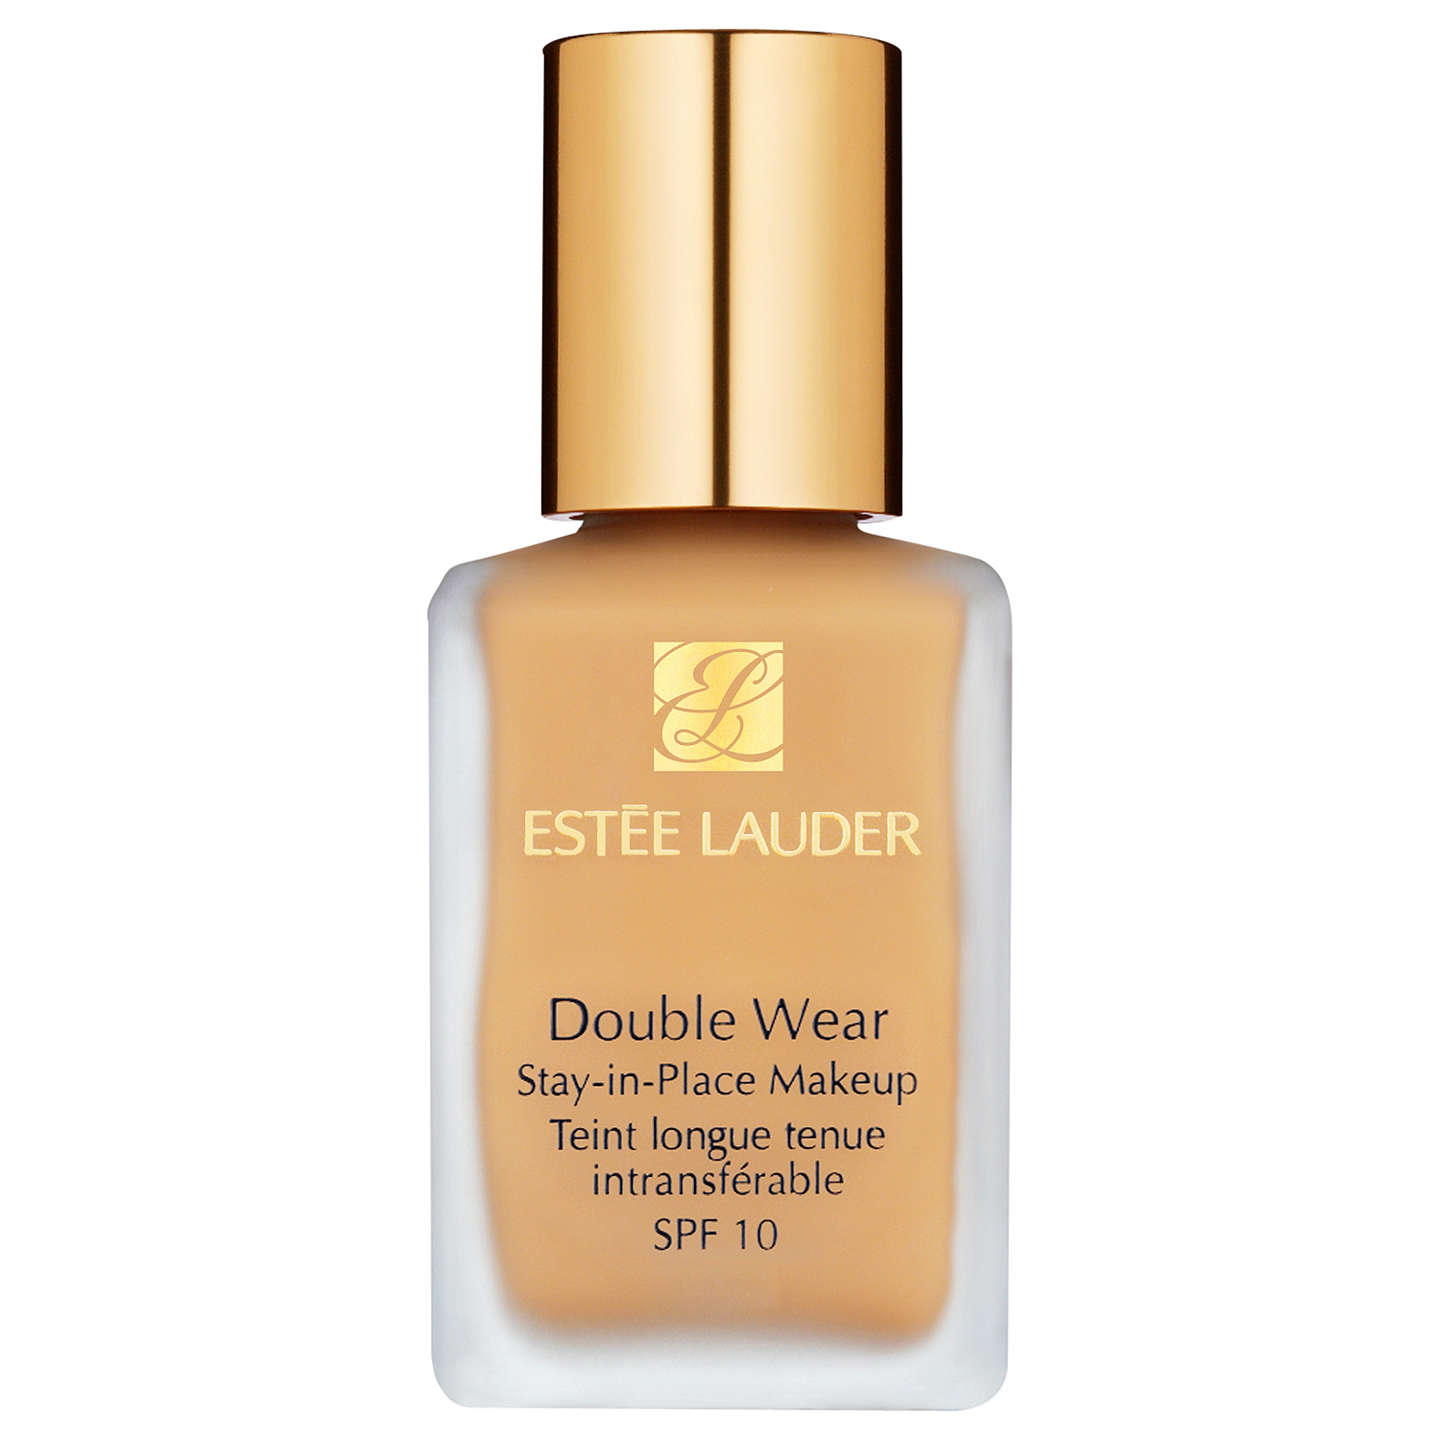 BuyEstée Lauder Double Wear Stay-In-Place Foundation Makeup SPF10, 2N1 Desert Beige Online at johnlewis.com